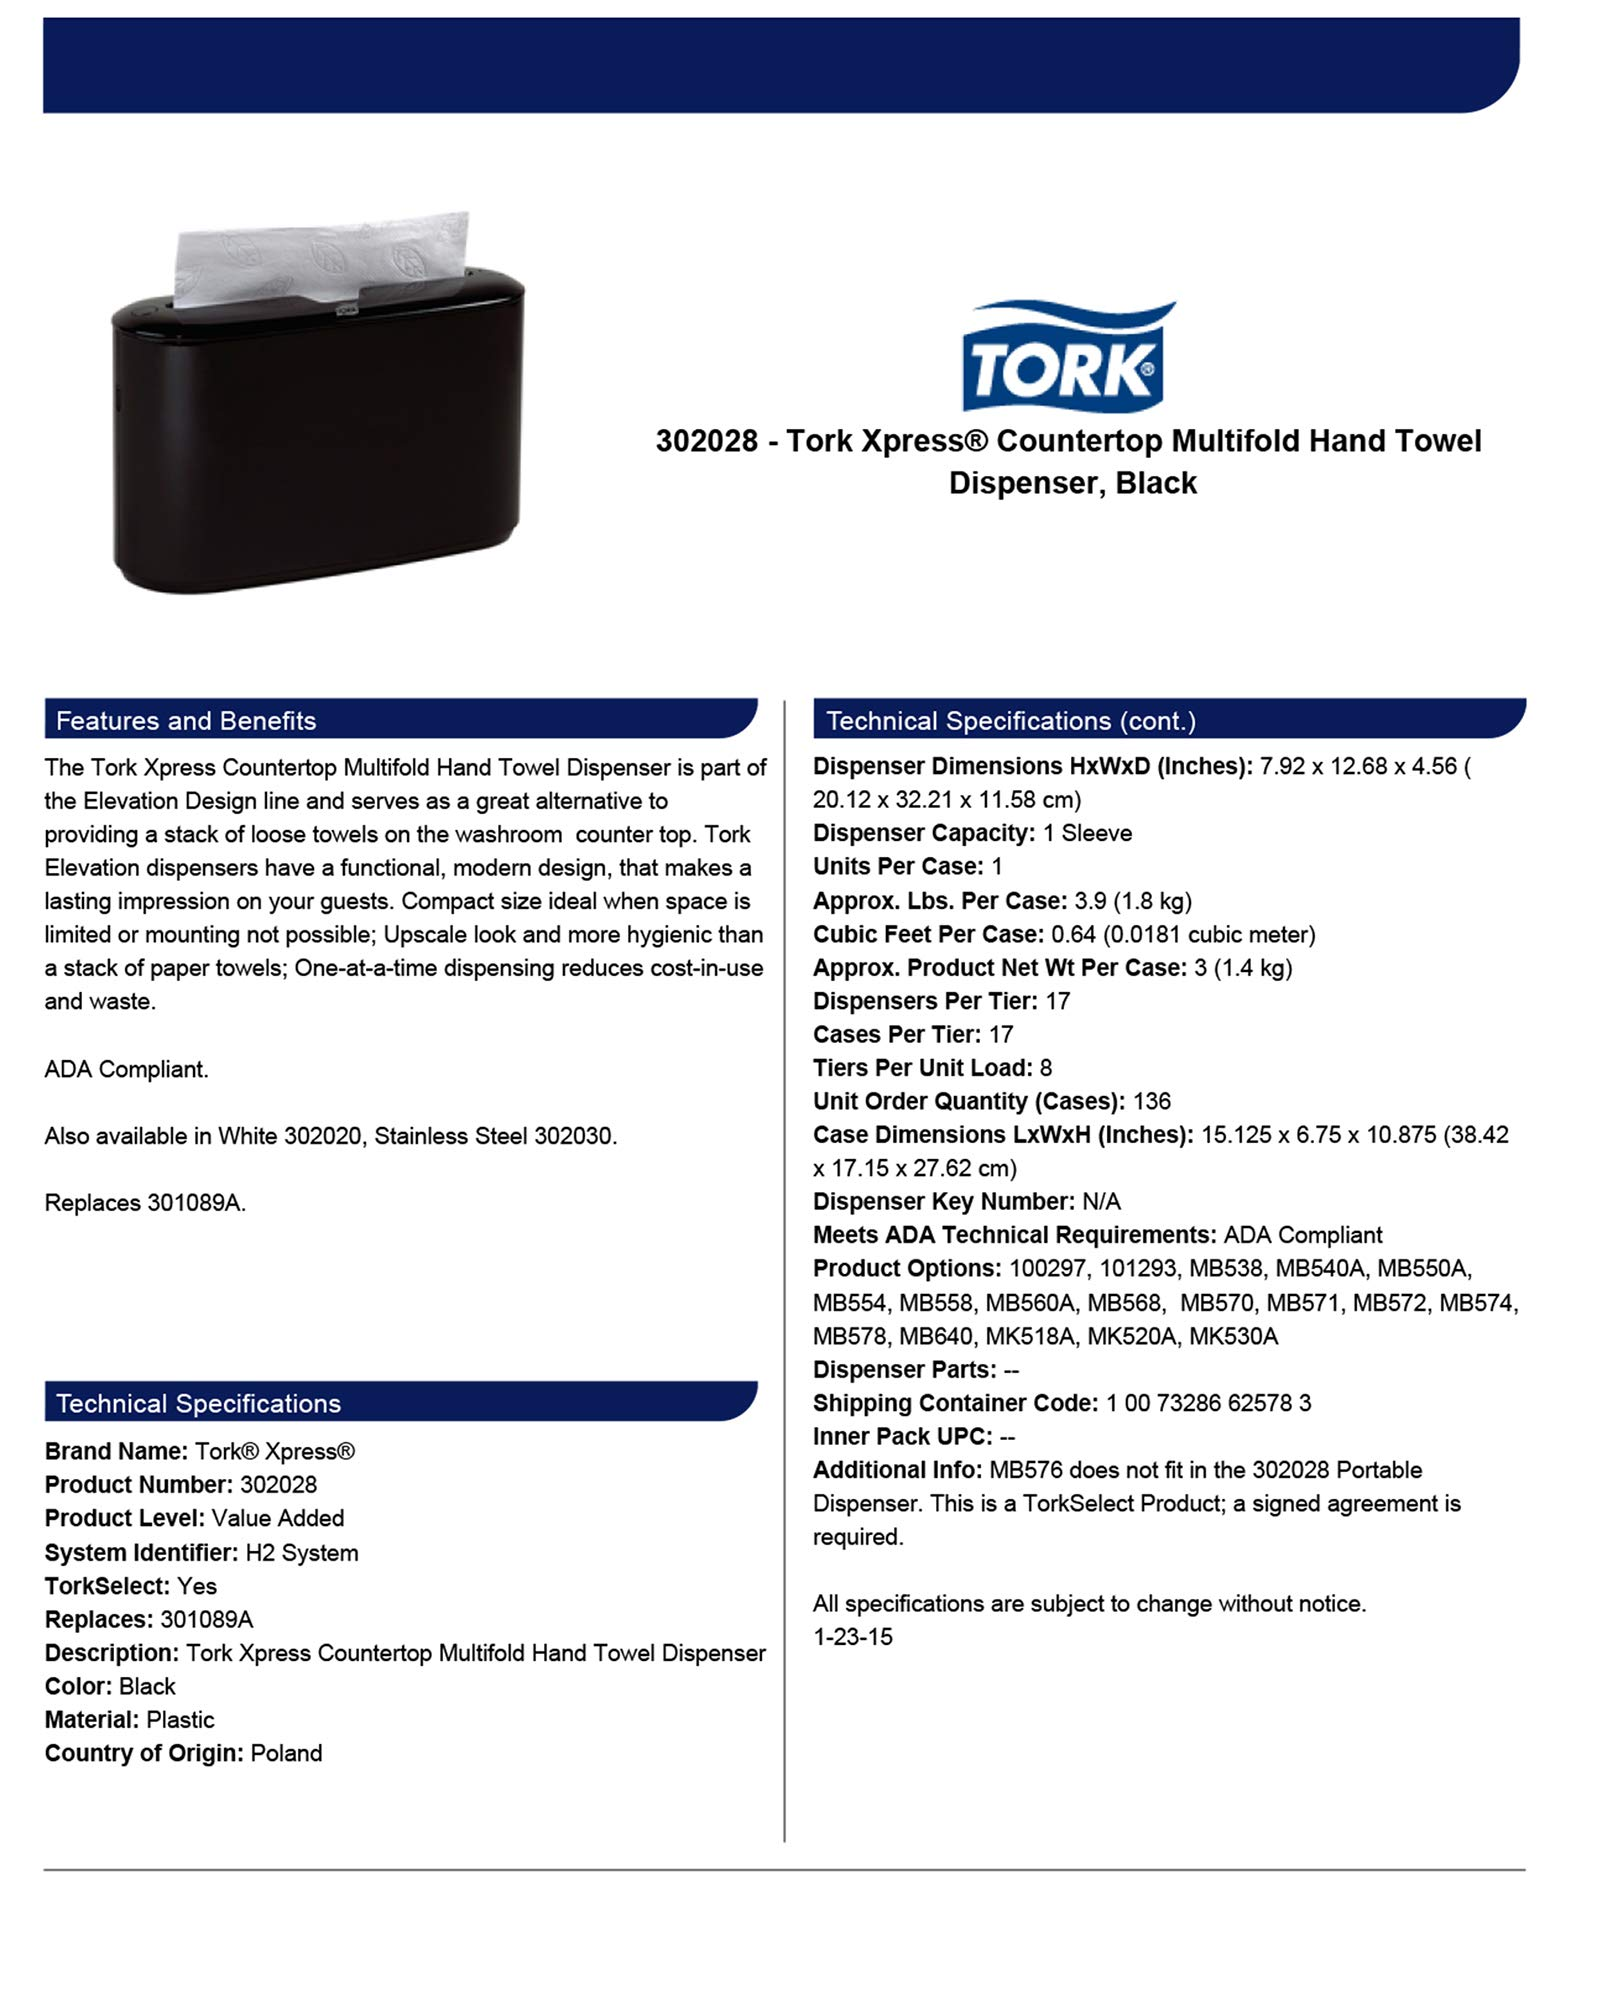 Tork Xpress 302028 Countertop Multifold Hand Towel Dispenser, Plastic, 7.92'' Height x 12.68'' Width x 4.56'' Depth, Black (Case of 1) For use with Tork MB550A, MB640, MB540A by Tork (Image #4)